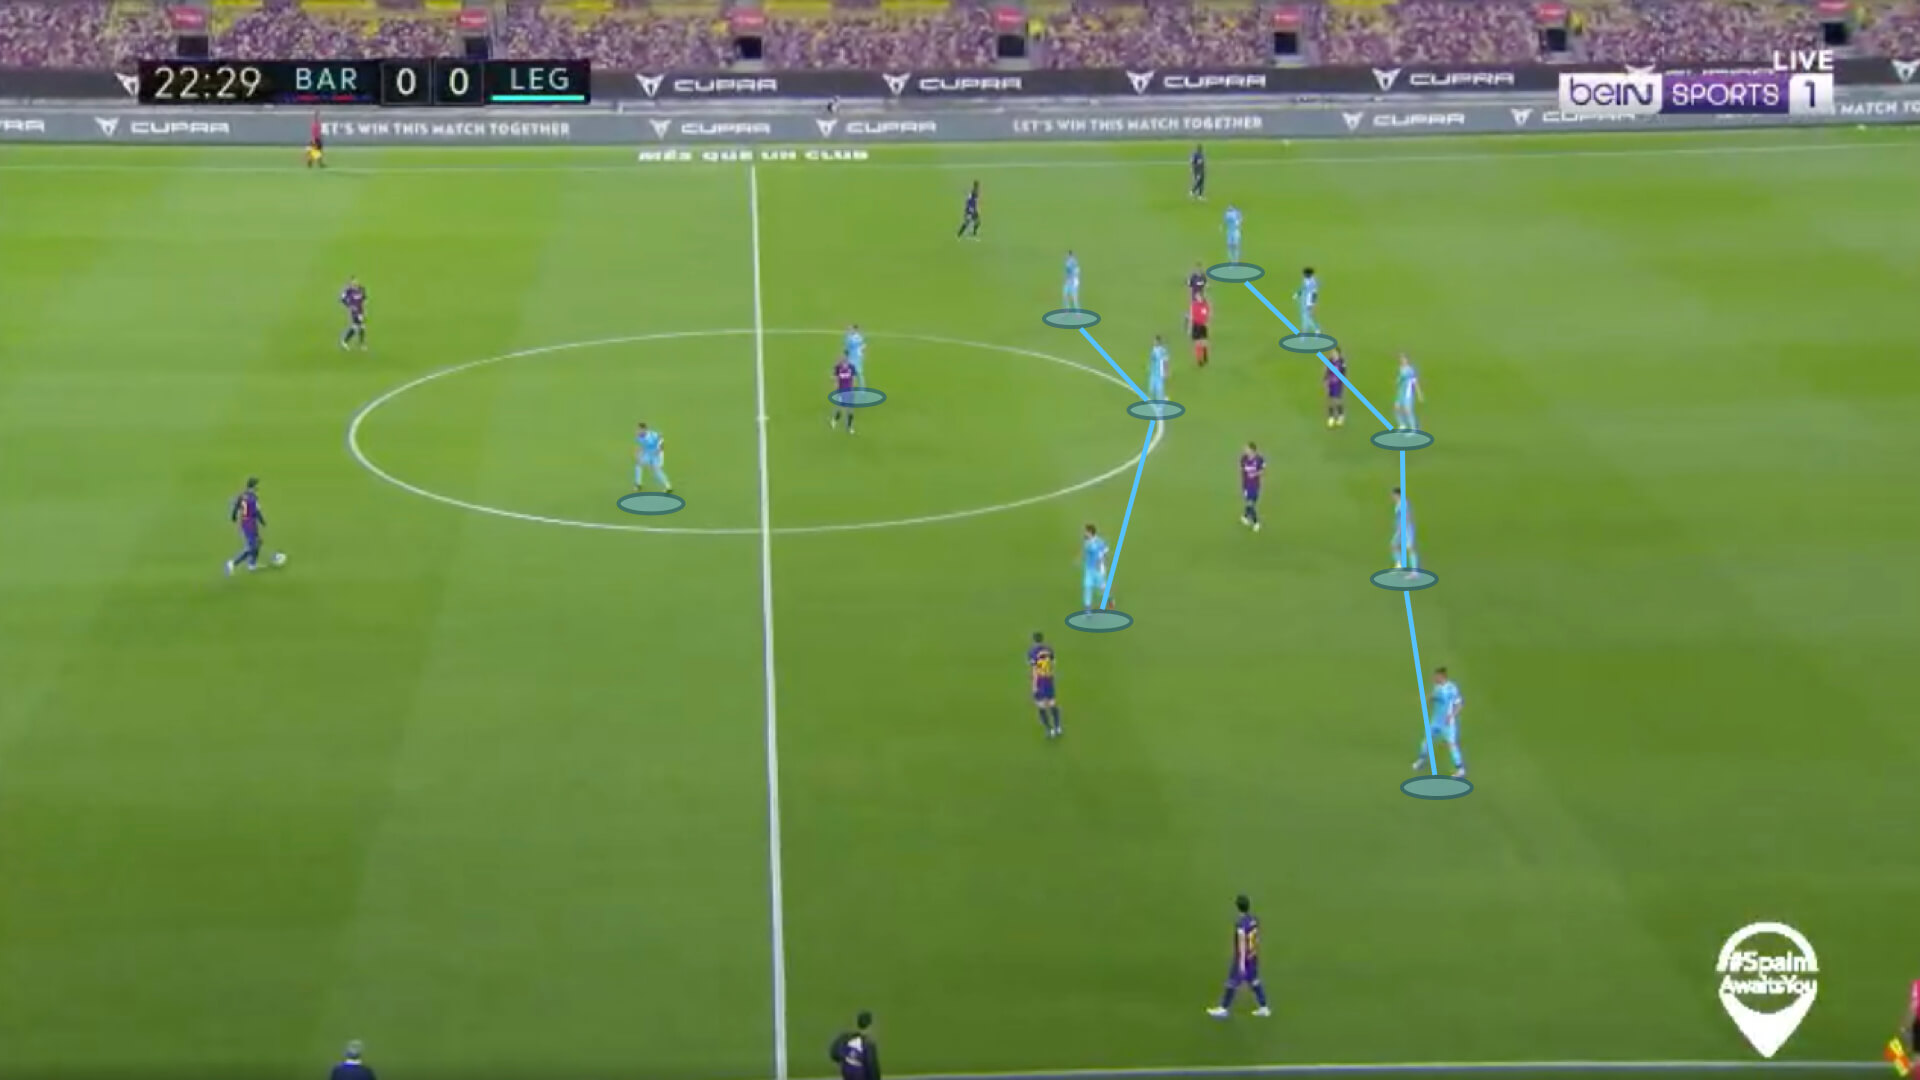 La Liga 2019/20: Barcelona vs Leganes - tactical analysis tactics